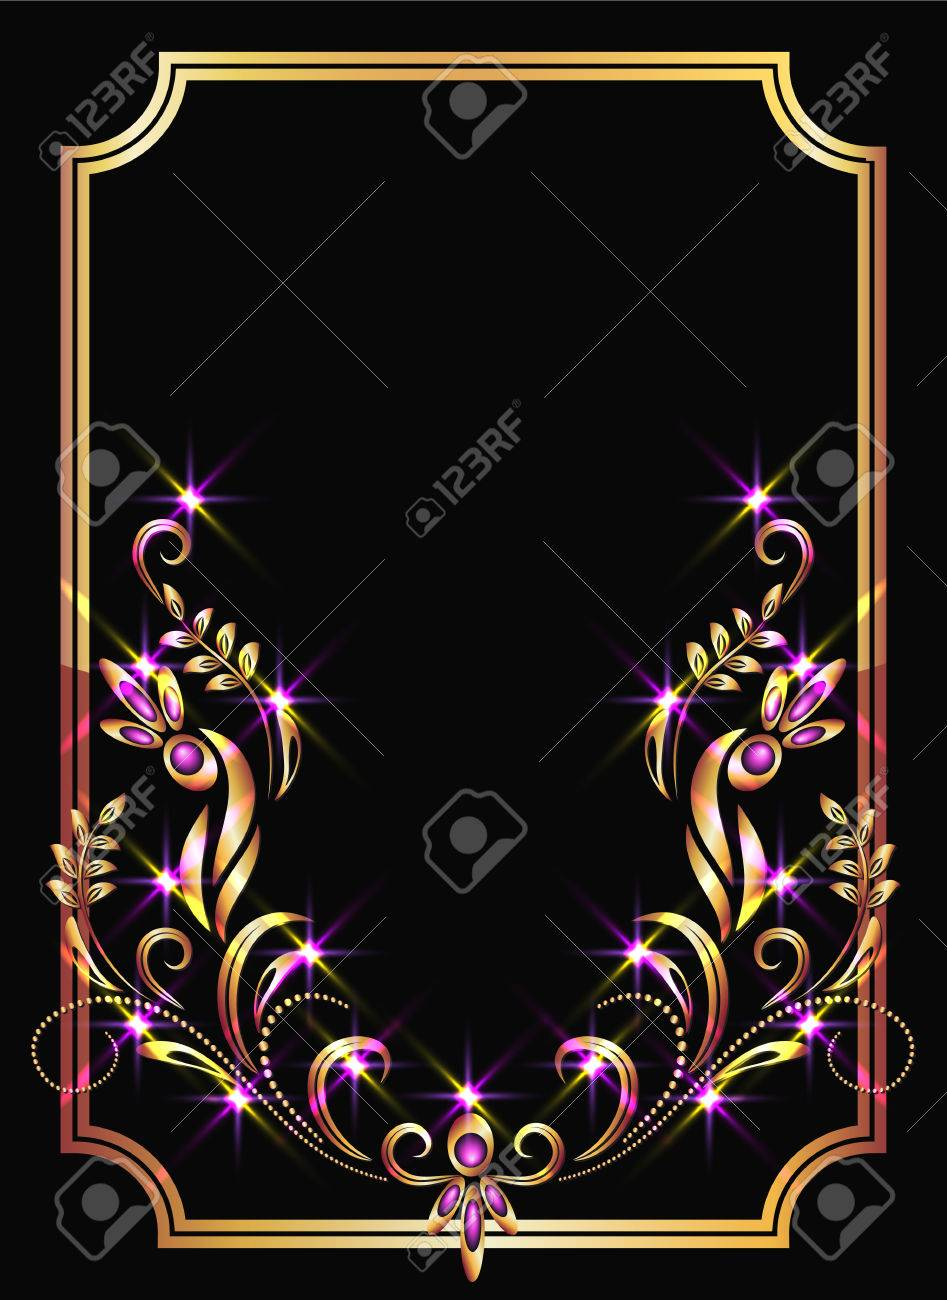 Background with golden ornament and sparkling lights Stock Vector - 8348718